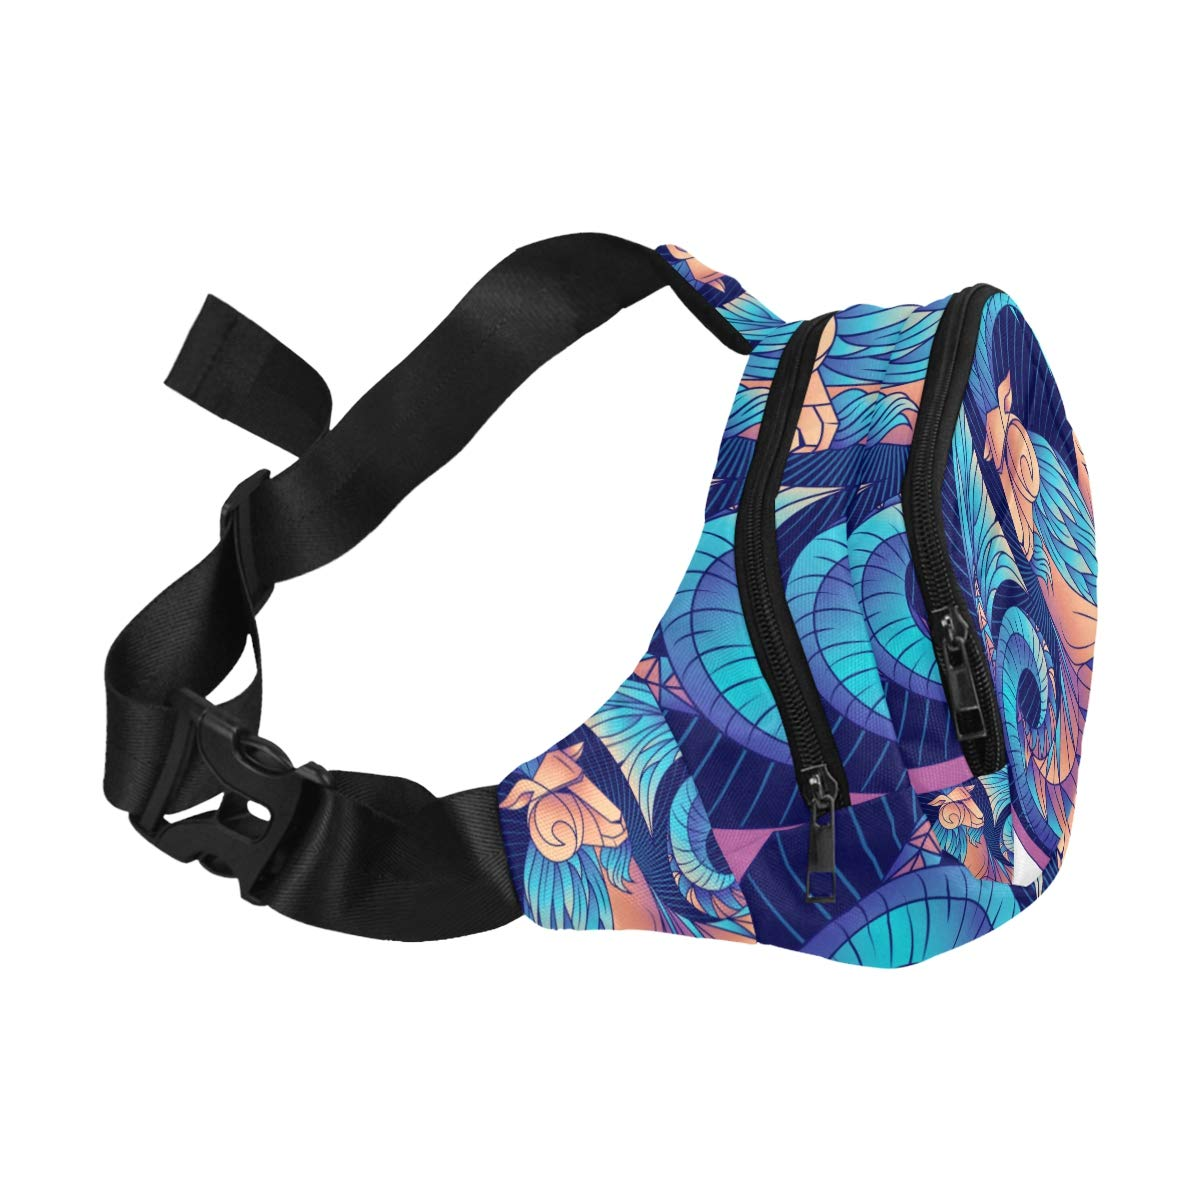 Zodiac Sign Capricorn Fenny Packs Waist Bags Adjustable Belt Waterproof Nylon Travel Running Sport Vacation Party For Men Women Boys Girls Kids